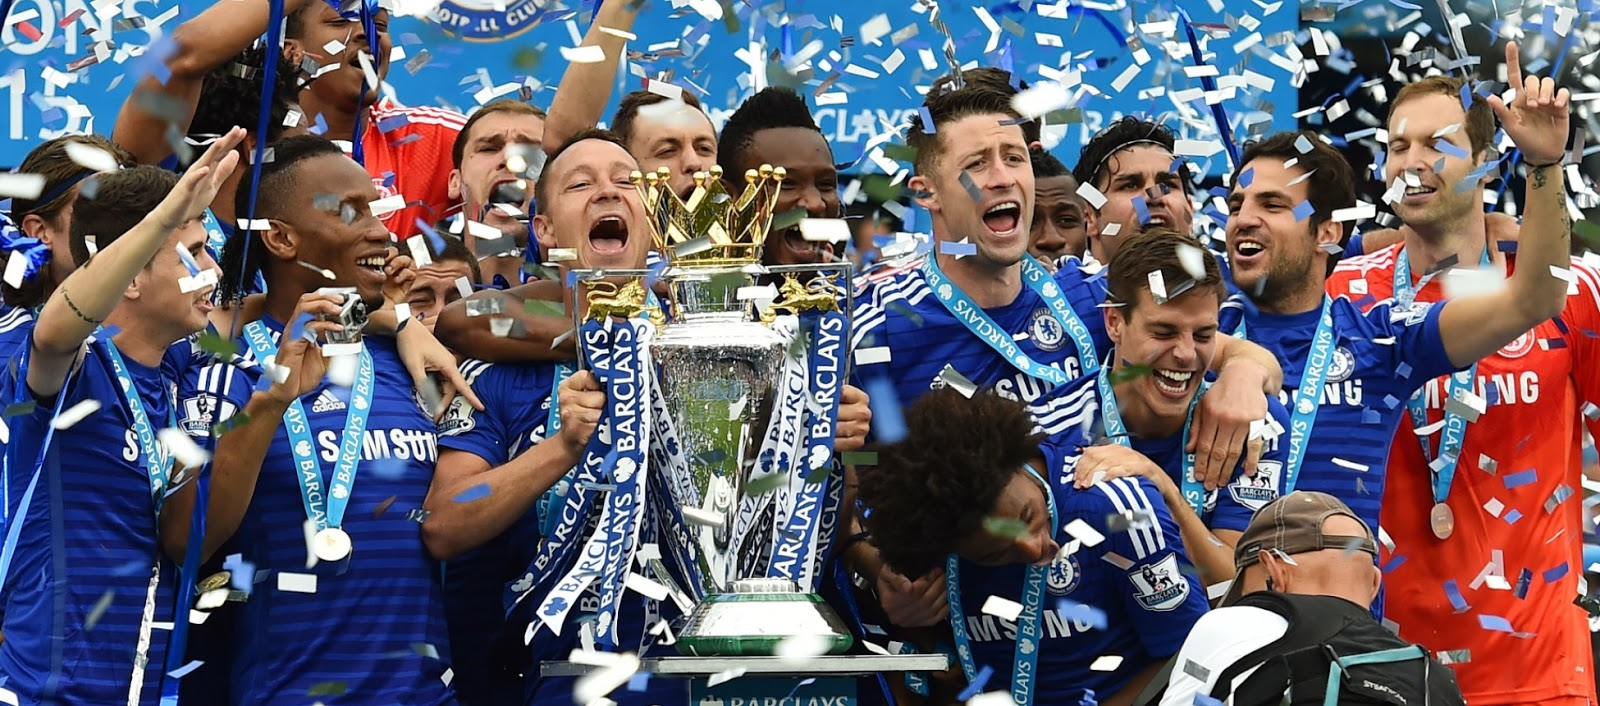 Chelsea second most successful team in EPL